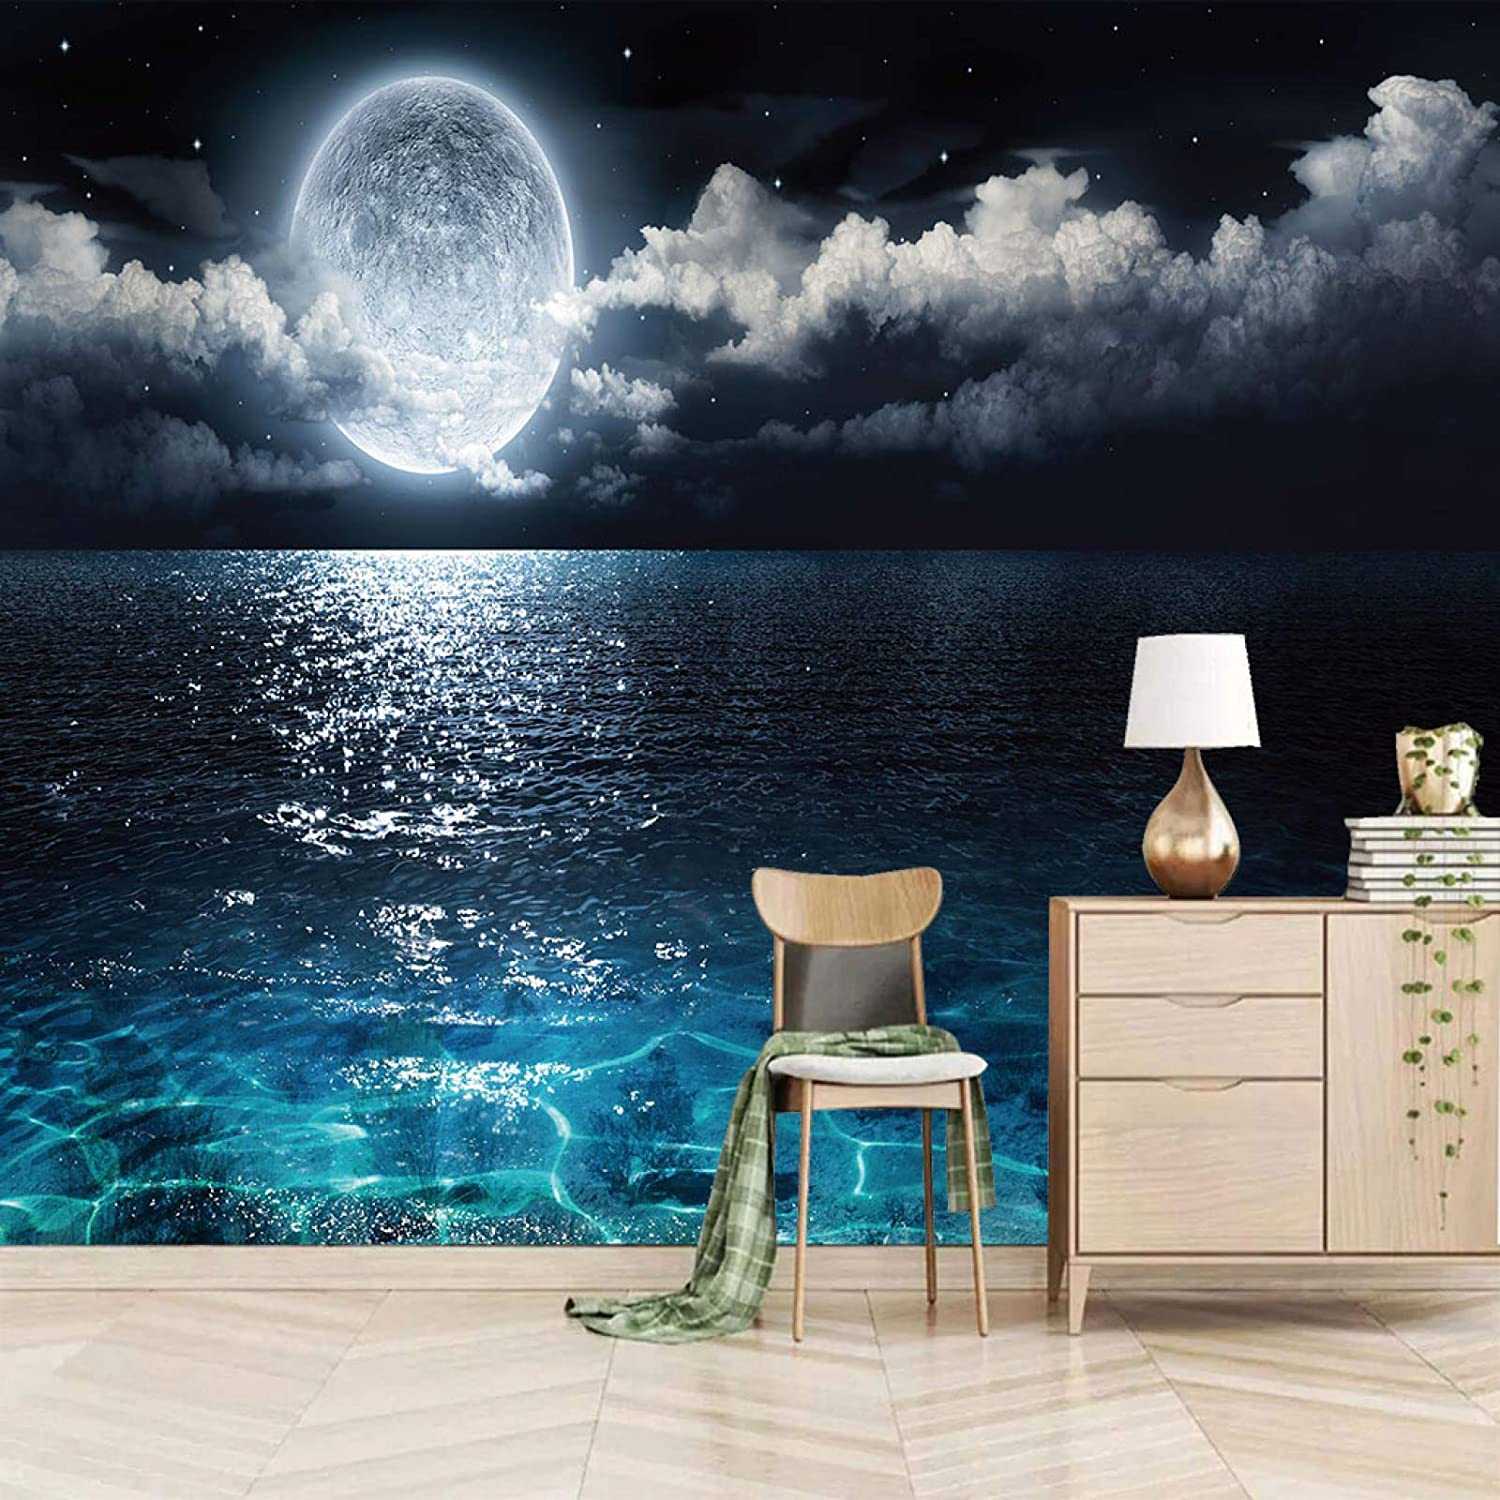 XiaoCha Night Sky Albuquerque Mall Dark Clouds Moon Self-Adhesive Wall St Lake 3D Deluxe